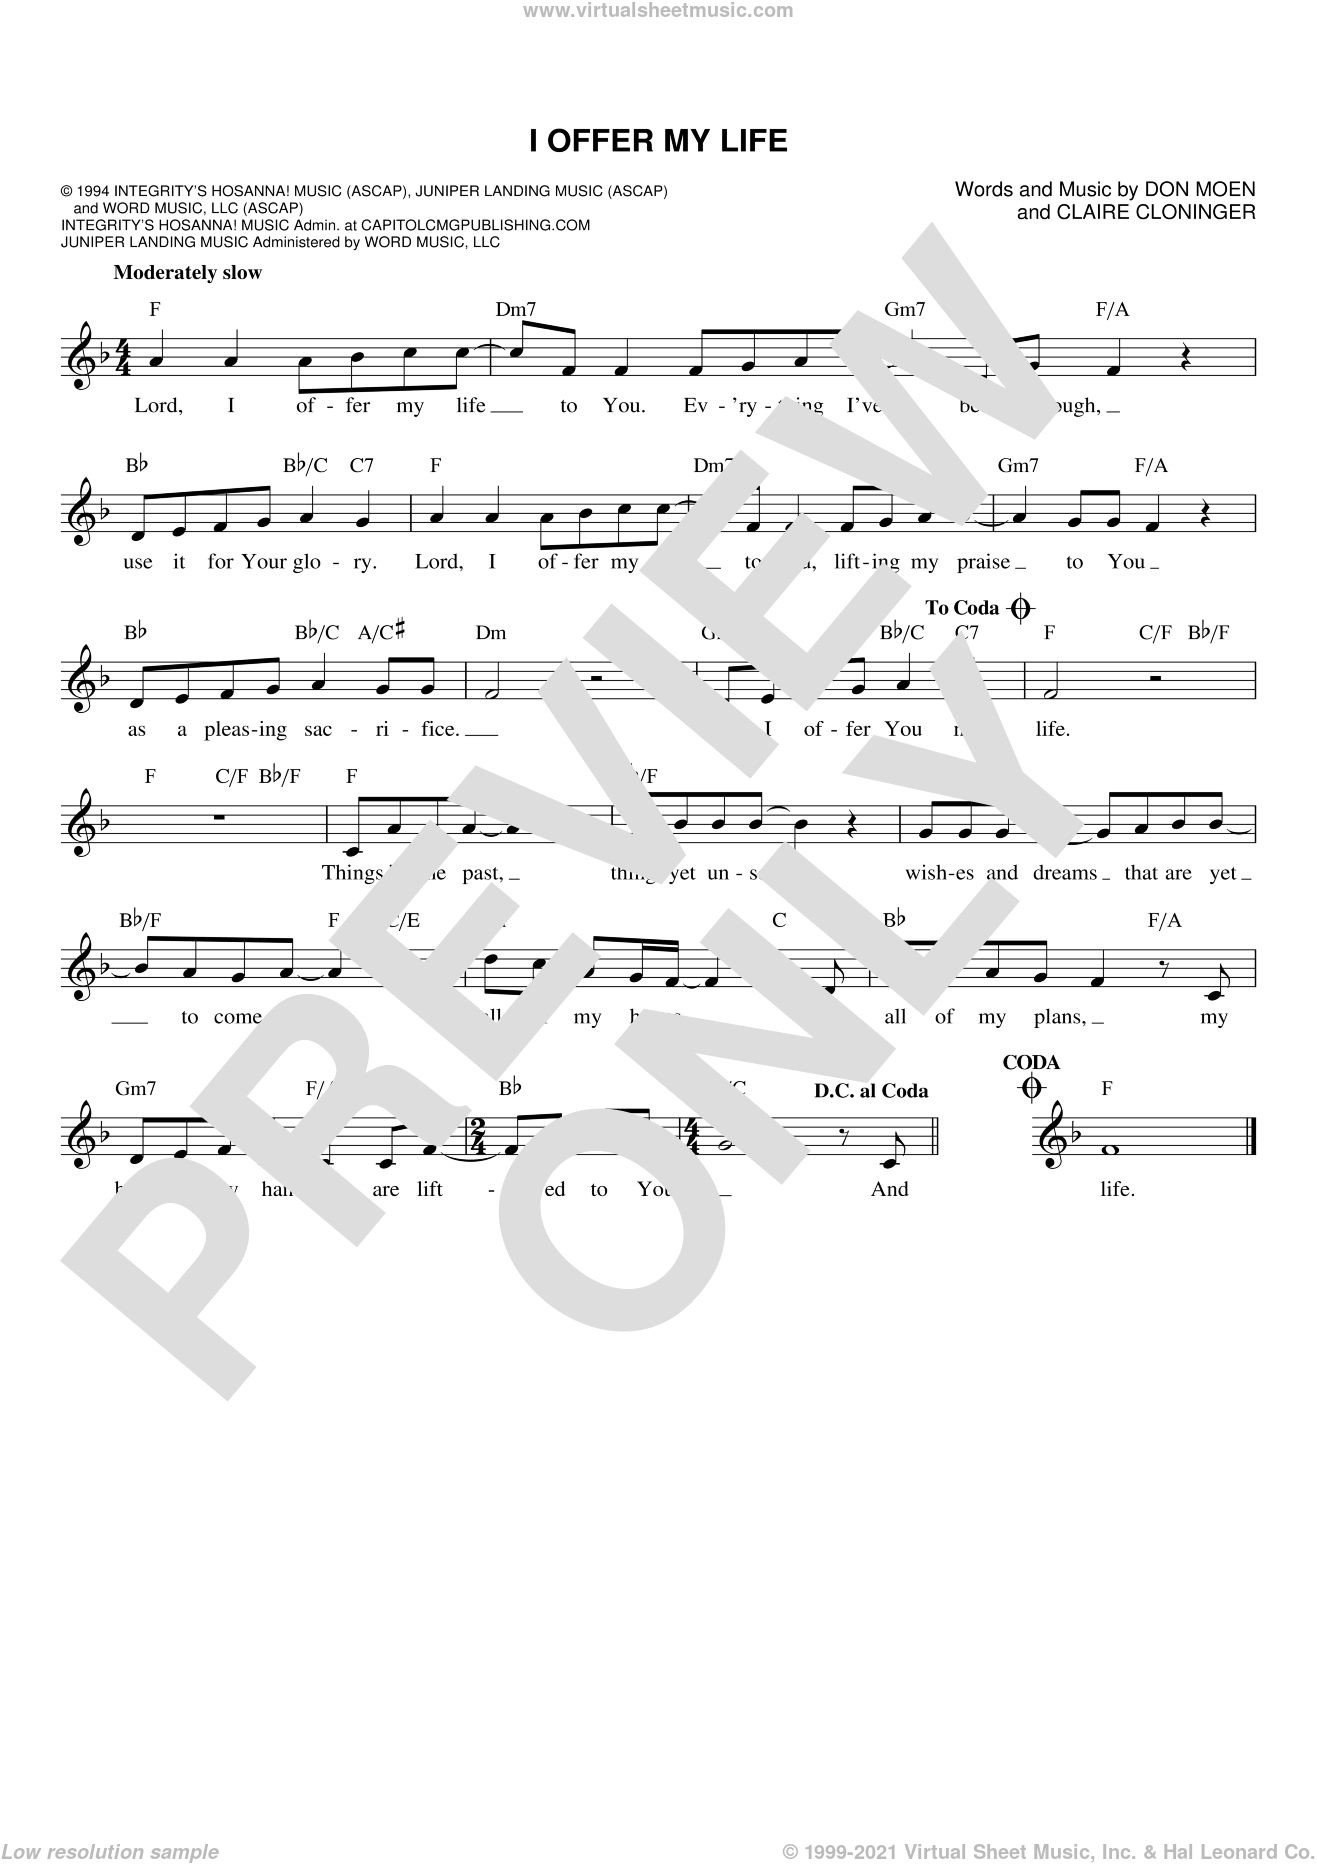 I Offer My Life sheet music for voice and other instruments (fake book) by Don Moen and Claire Cloninger, intermediate skill level